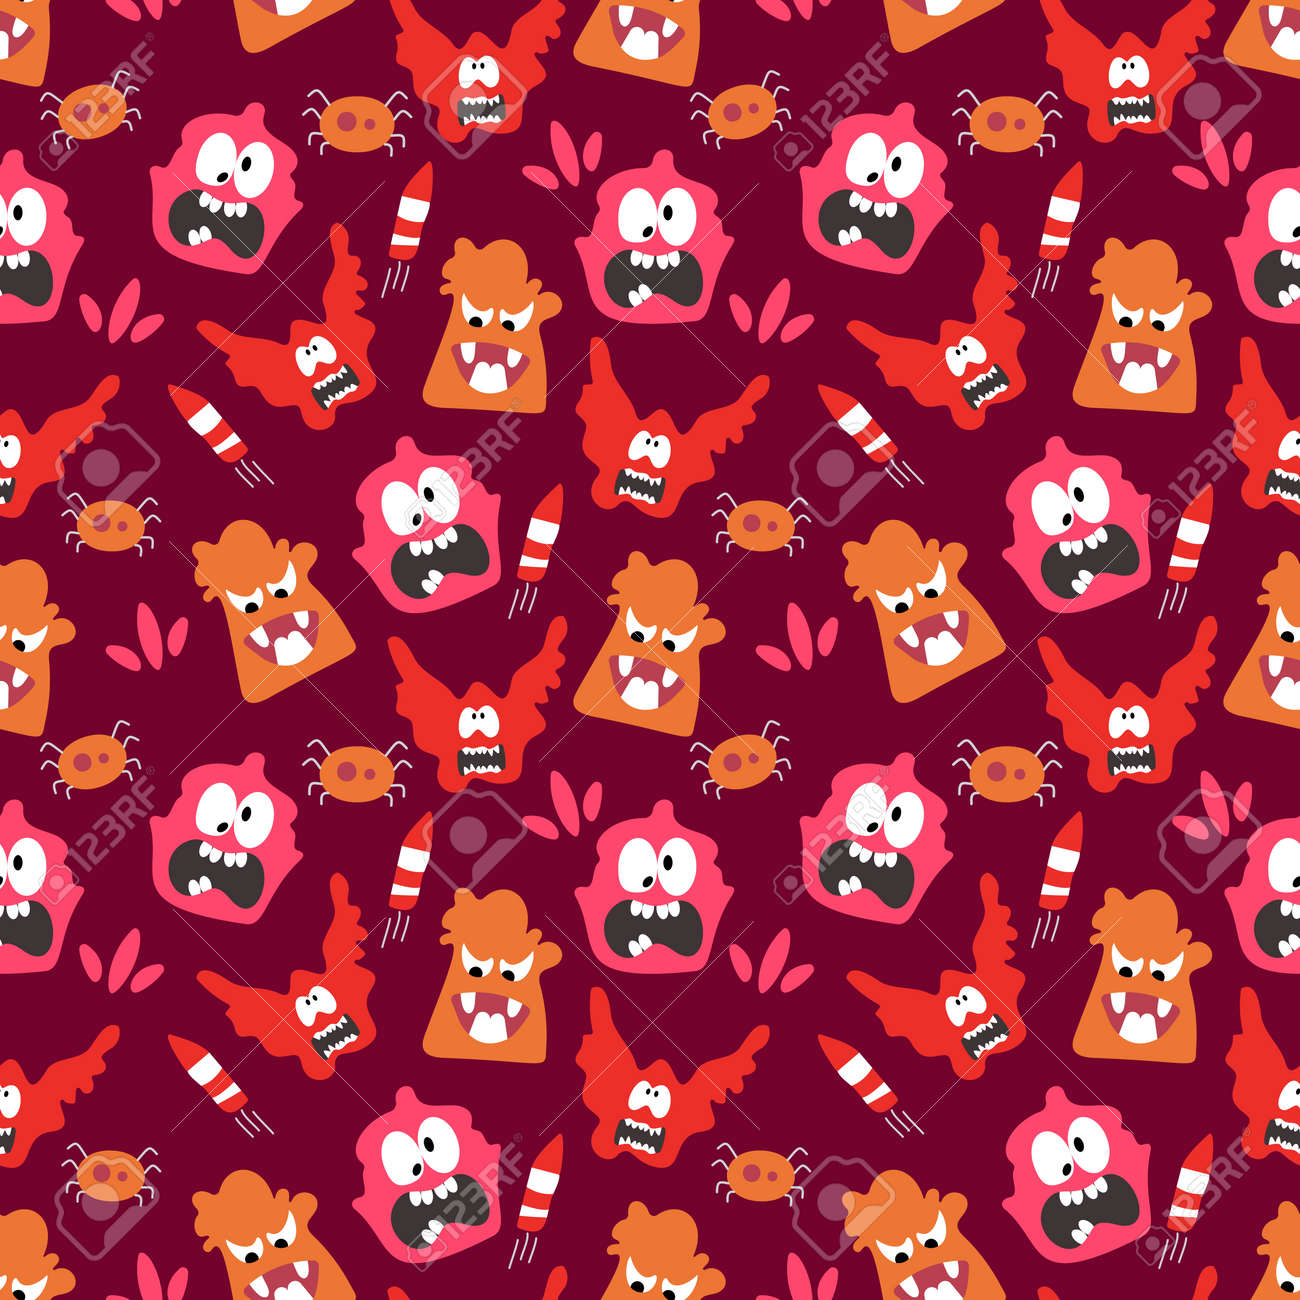 Seamless pattern with cute color monsters - 167718274